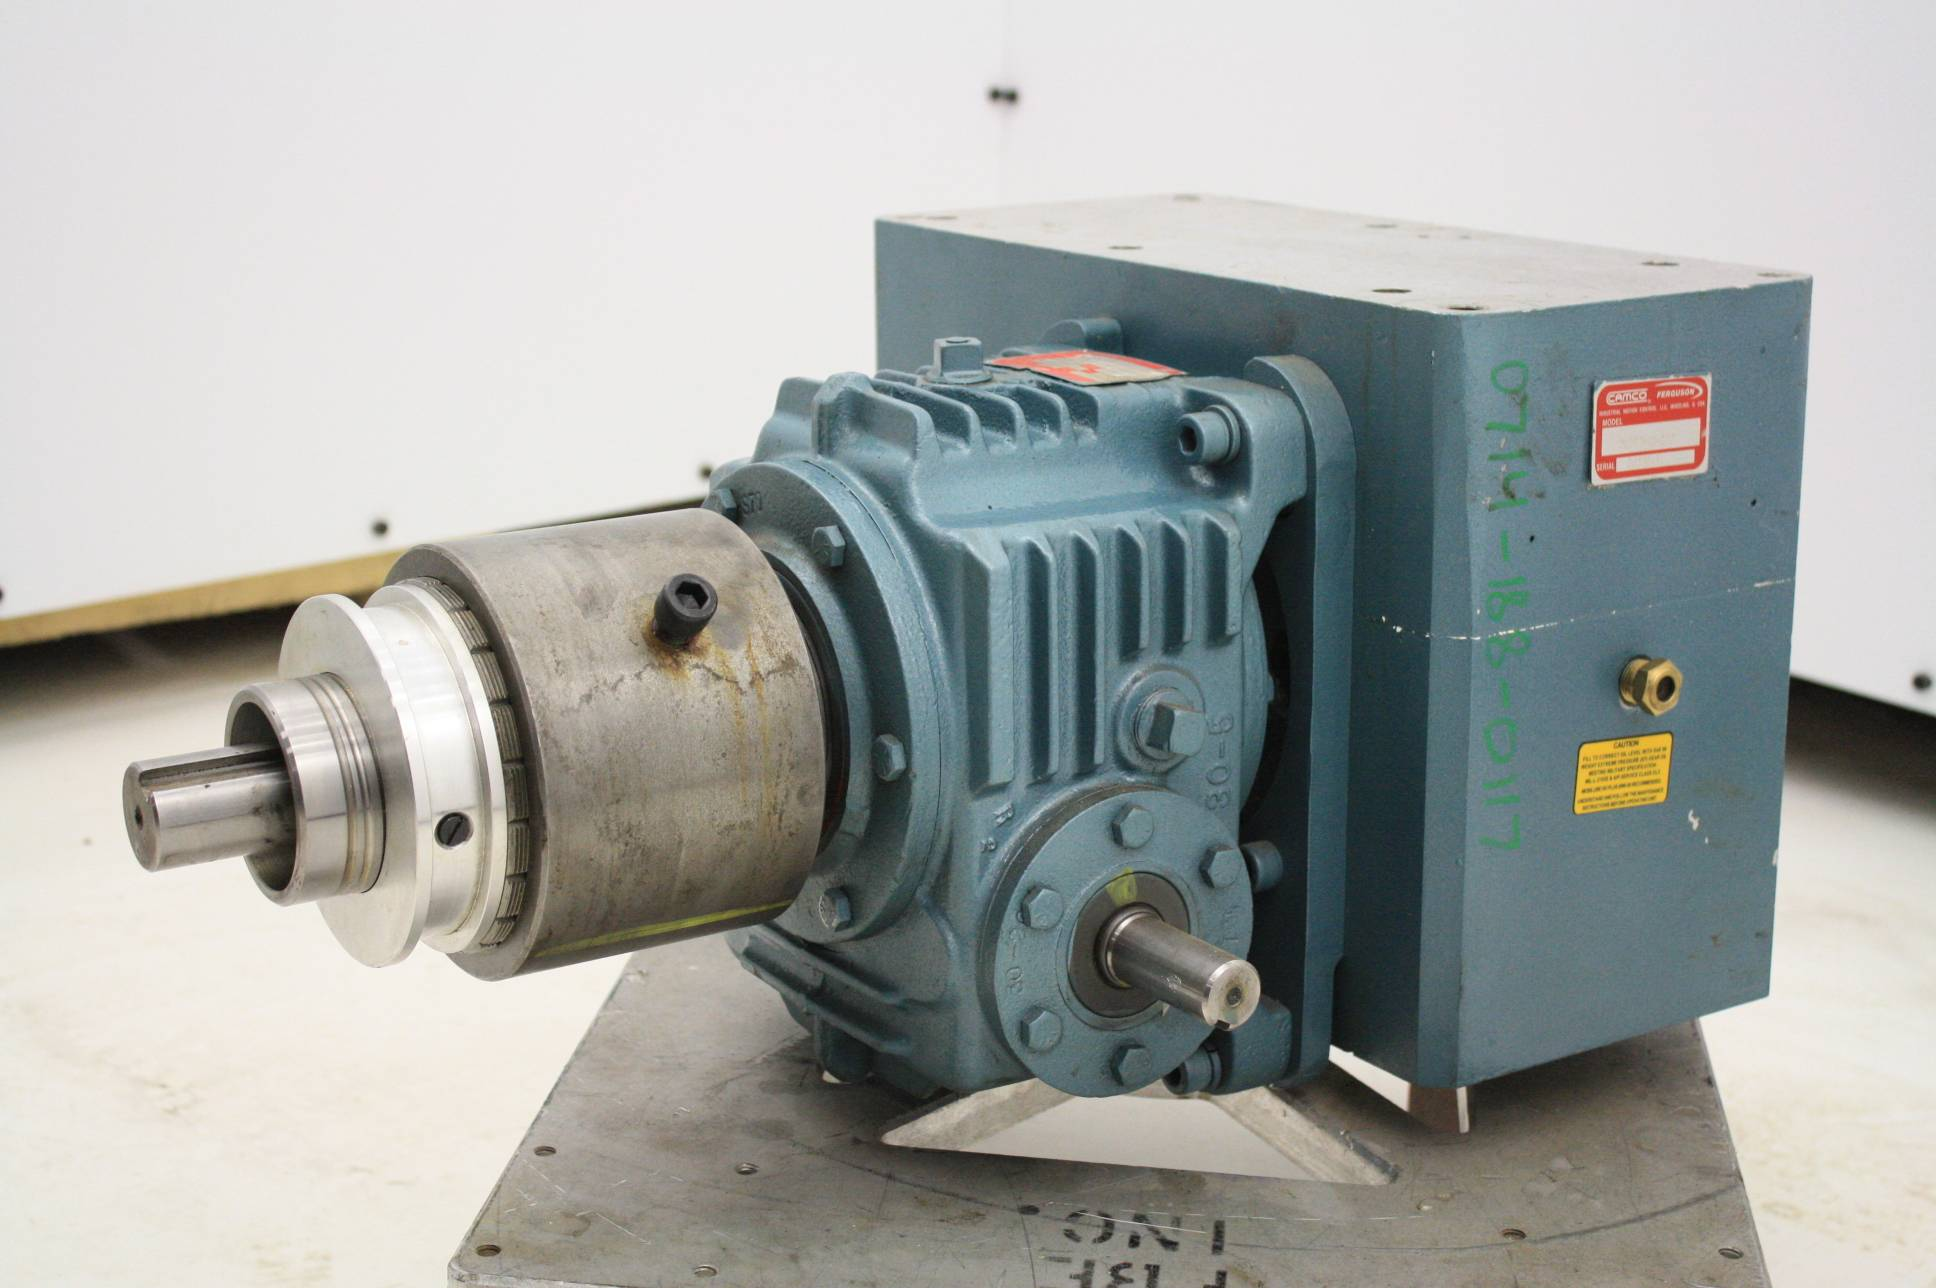 Camco 512p2h40 270 2 Stop Parallel Indexer Drive 40 1 Gear Reducer And Clutch Used Motion Constrained Surplus